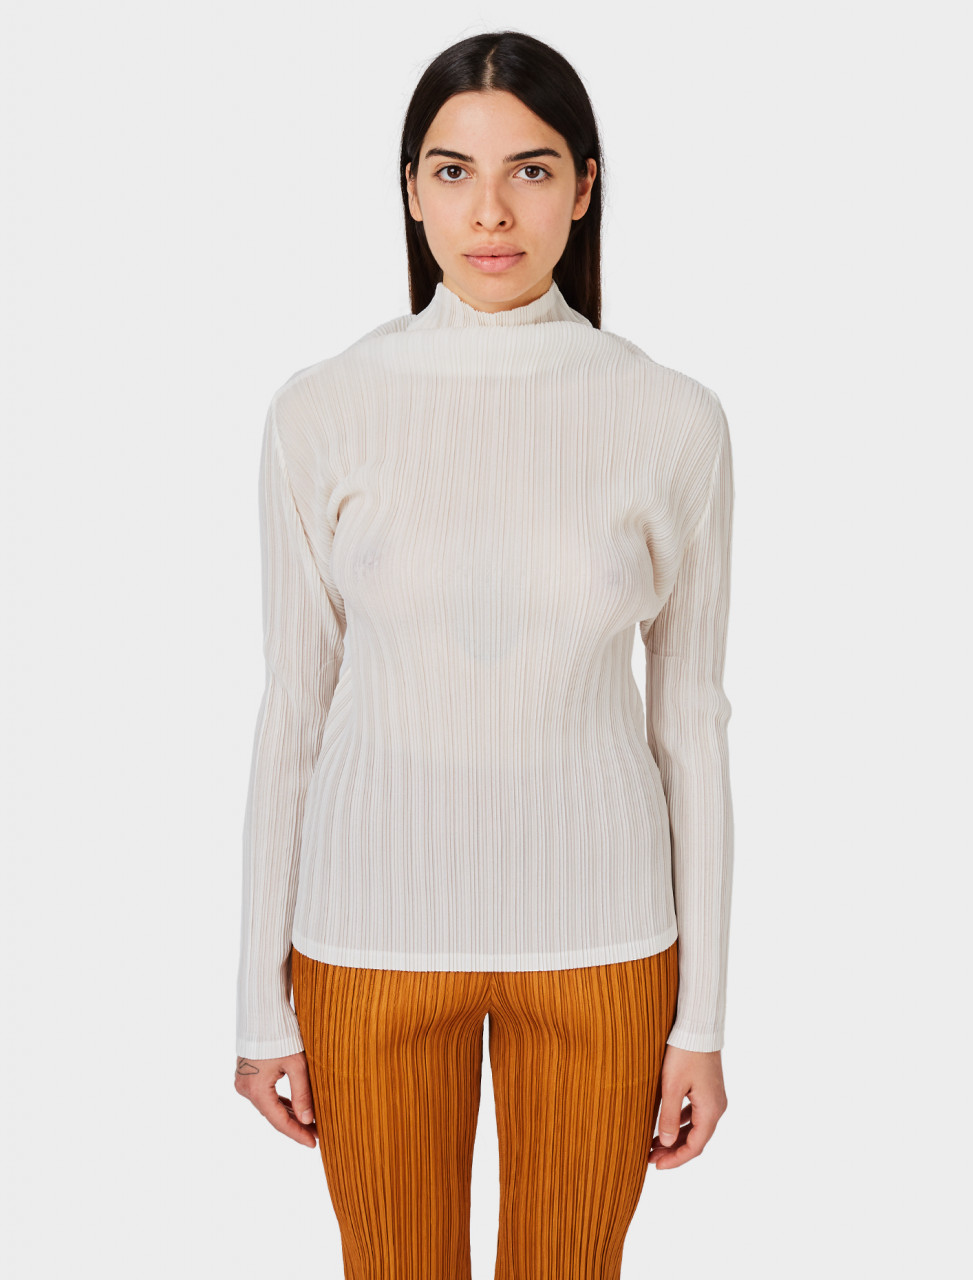 Pleats Please Issey Miyake Pleated Shirt in Off White